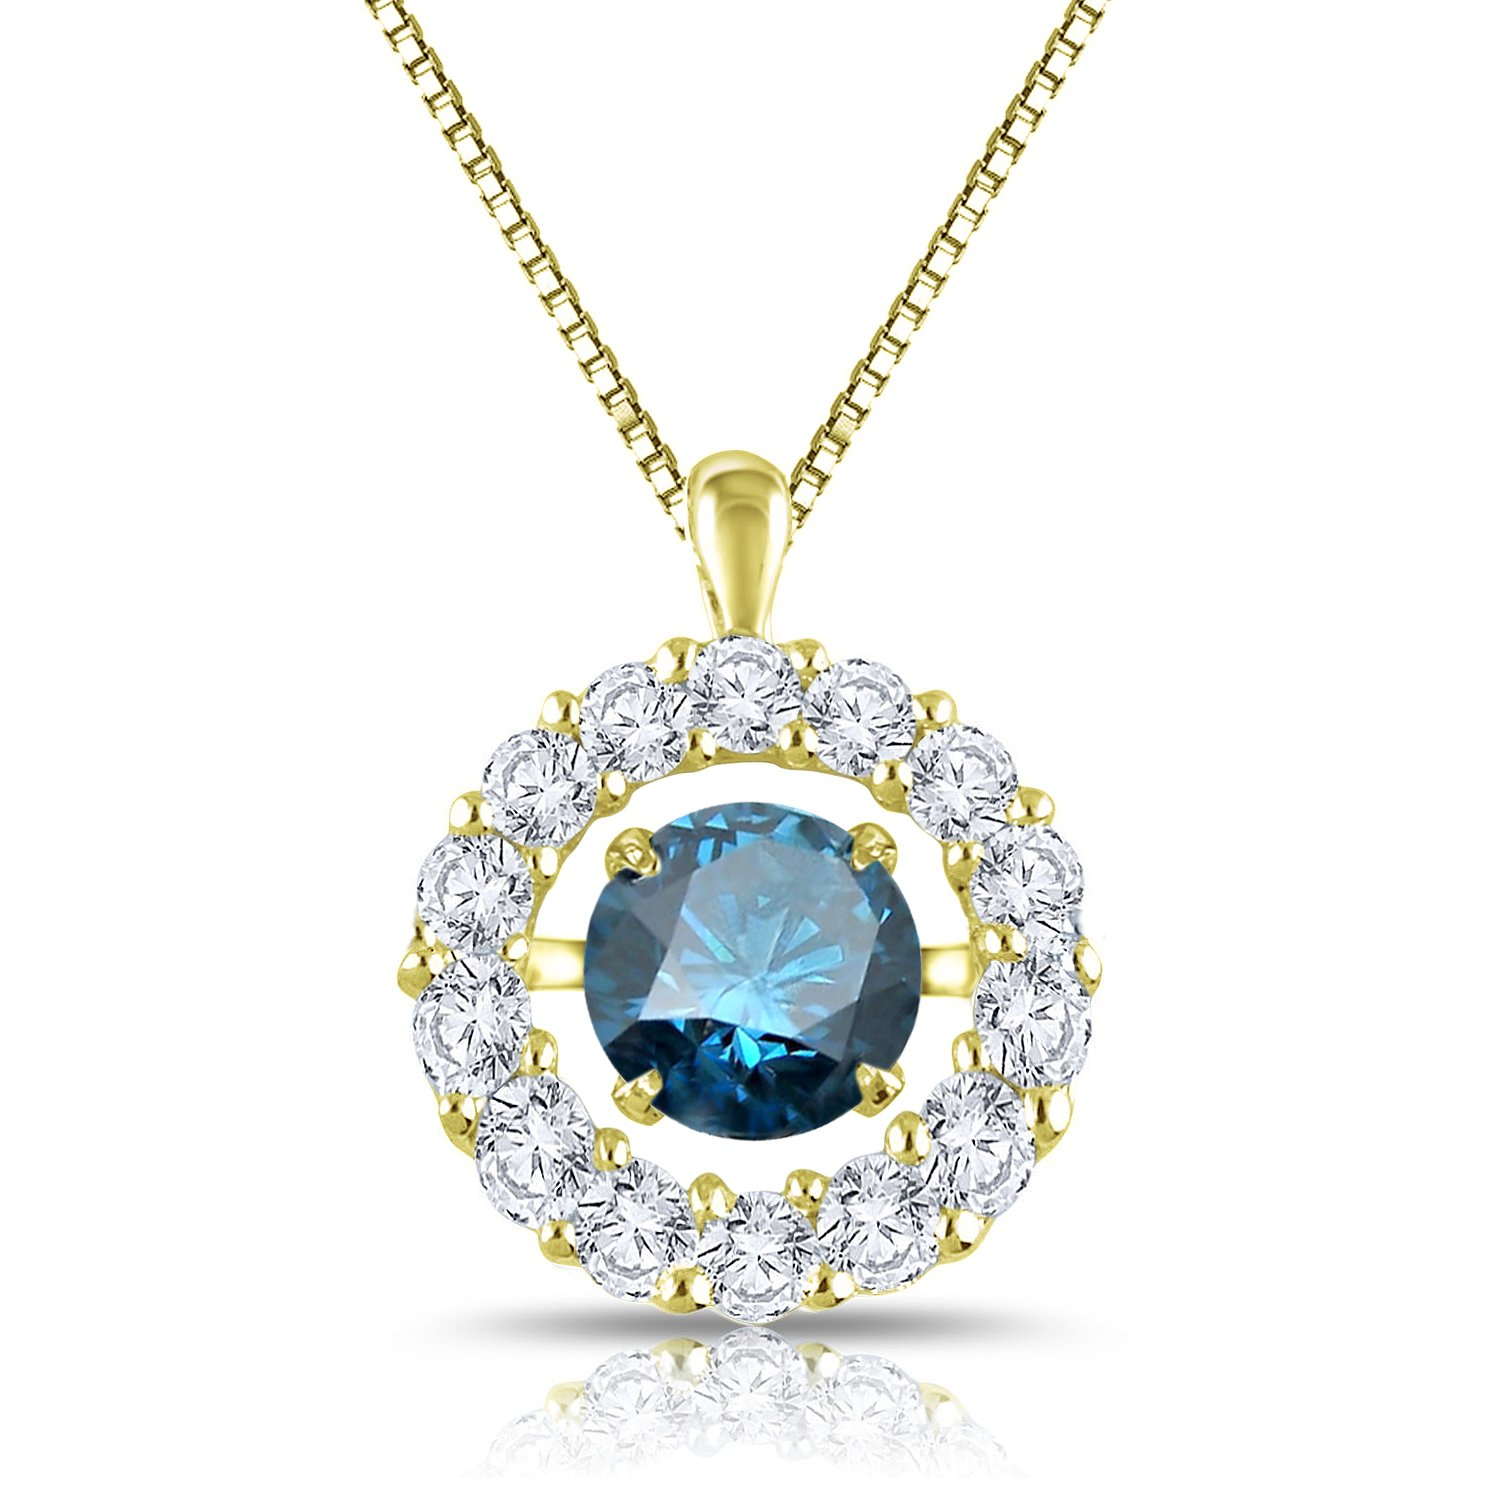 Diamond Wish 14k Yellow Gold Dancing Blue Diamond In Rhythm Circle Halo Pendant Necklace (1 cttw, Blue) with 18'' Chain